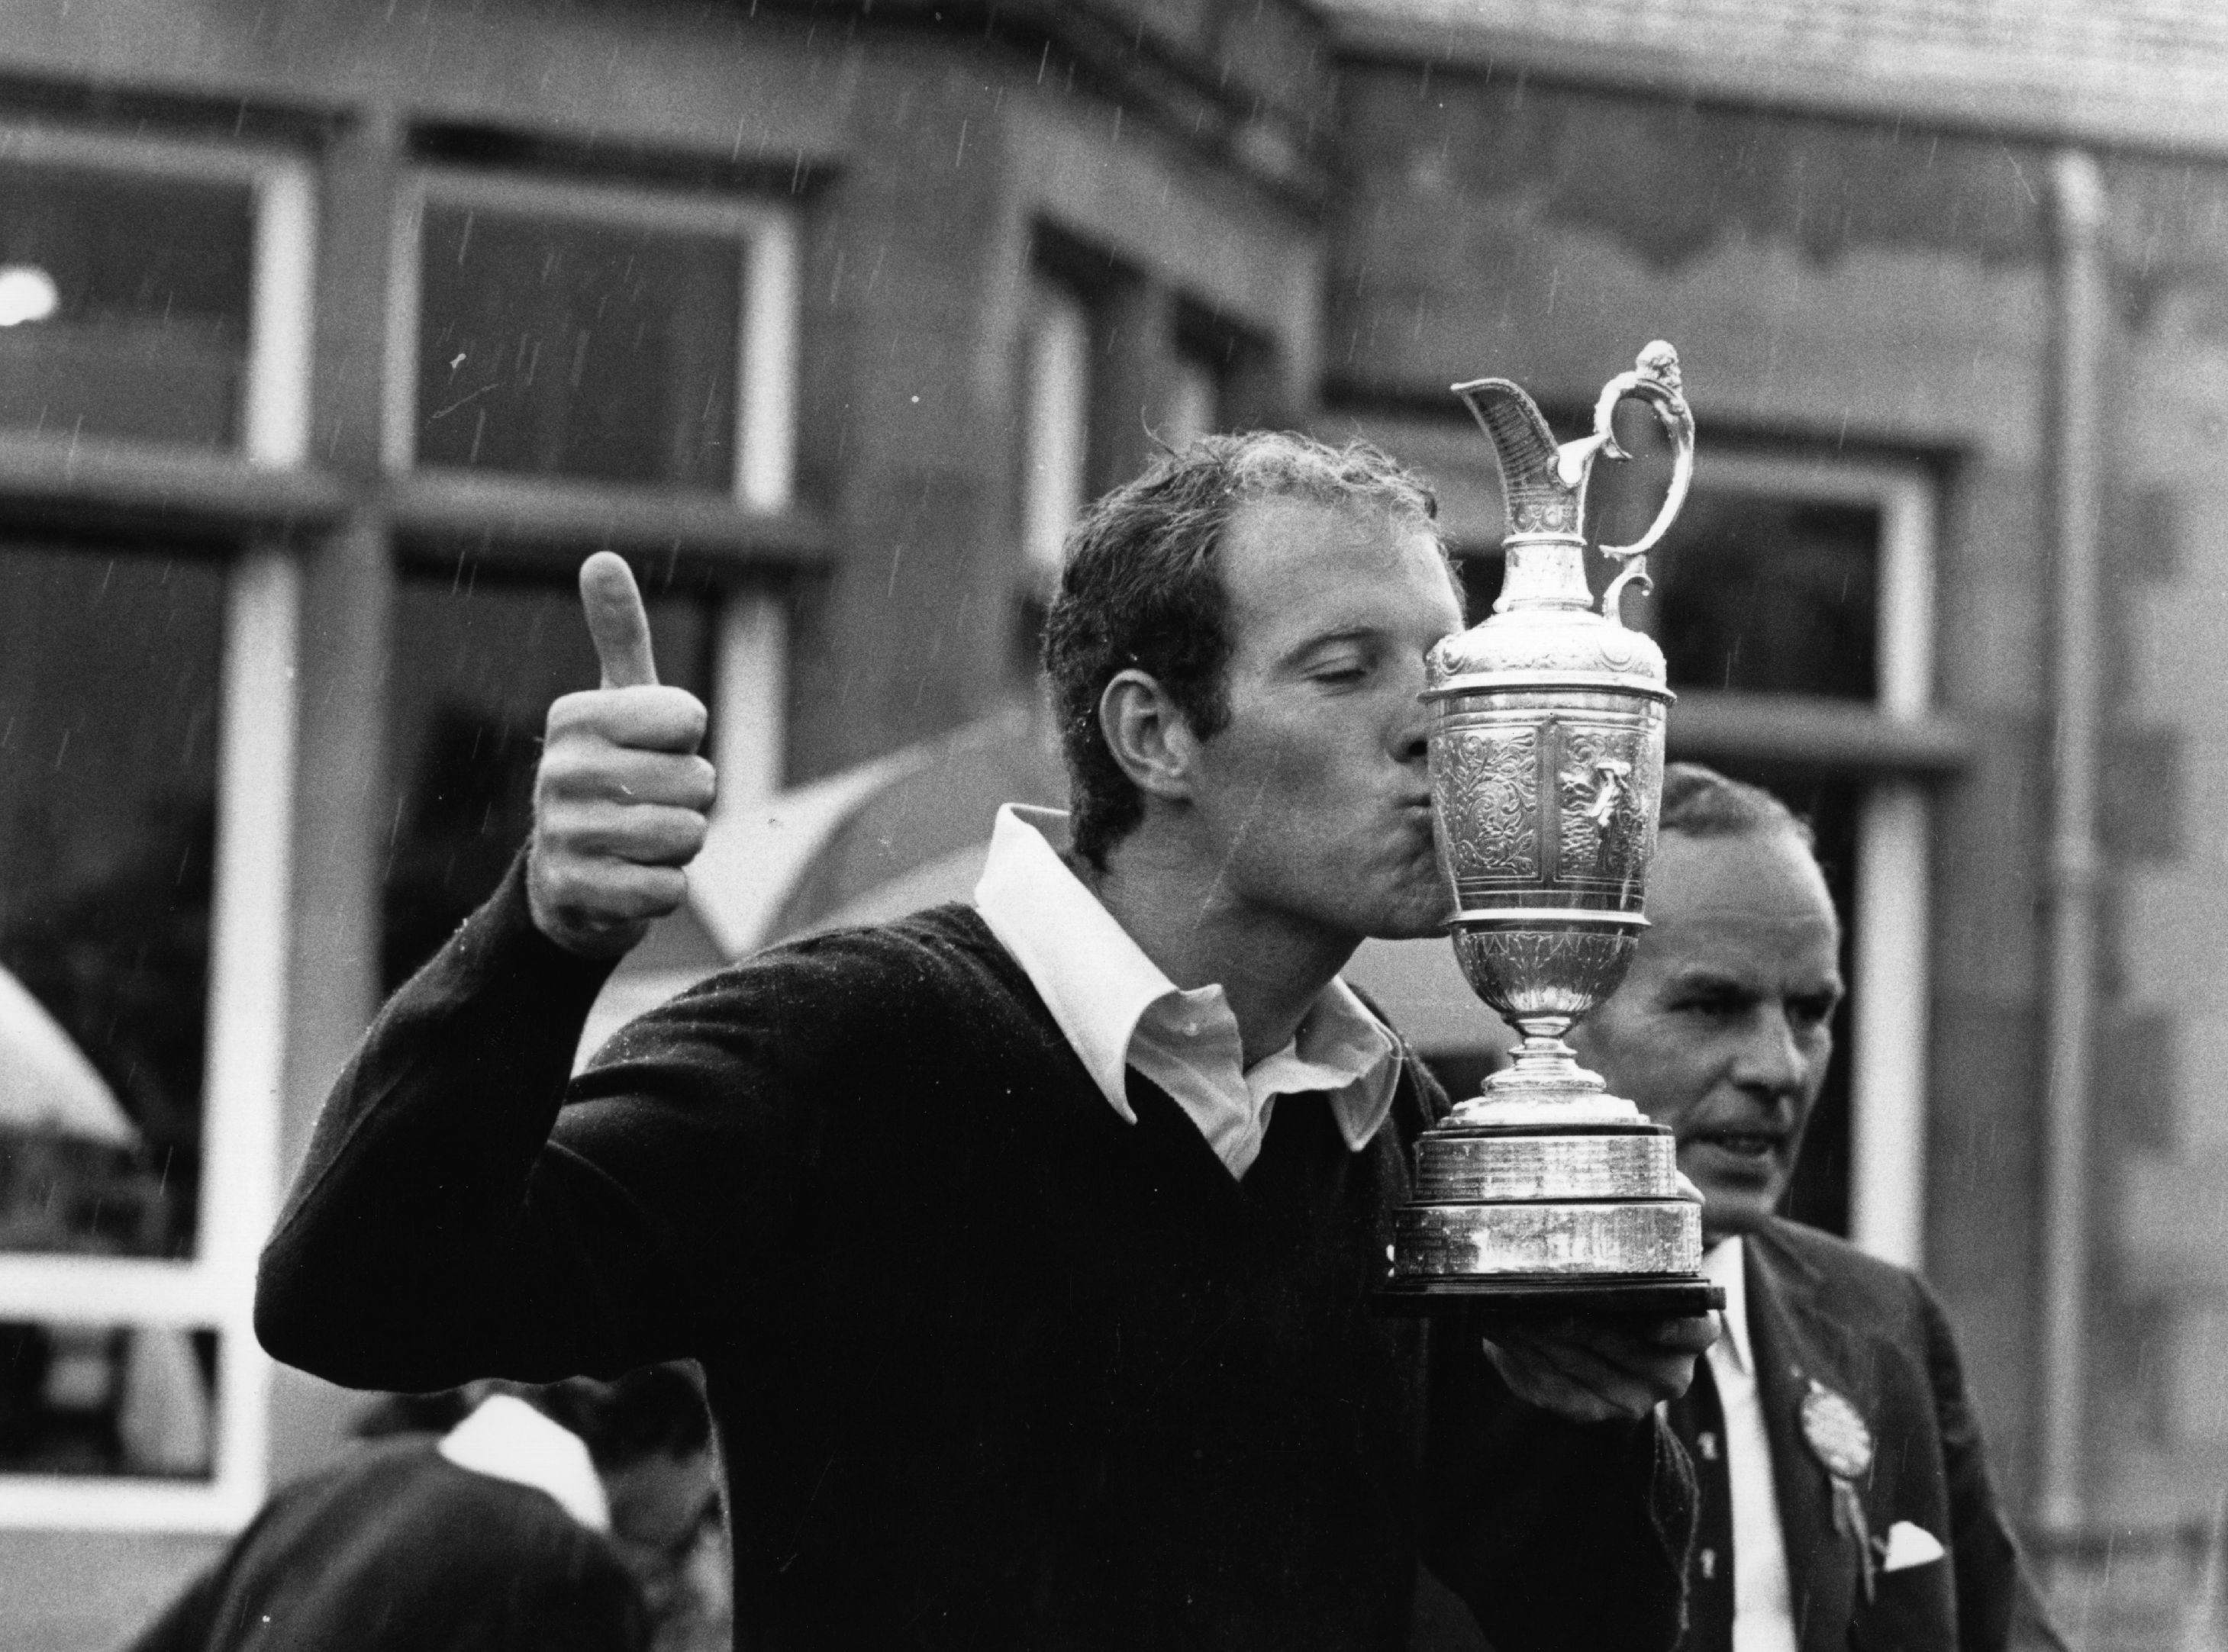 Tom Weiskopf, American golfer who acquired the nickname 'Towering Inferno' because of his height and his fits of anger, kissing the British Open Championship trophy.